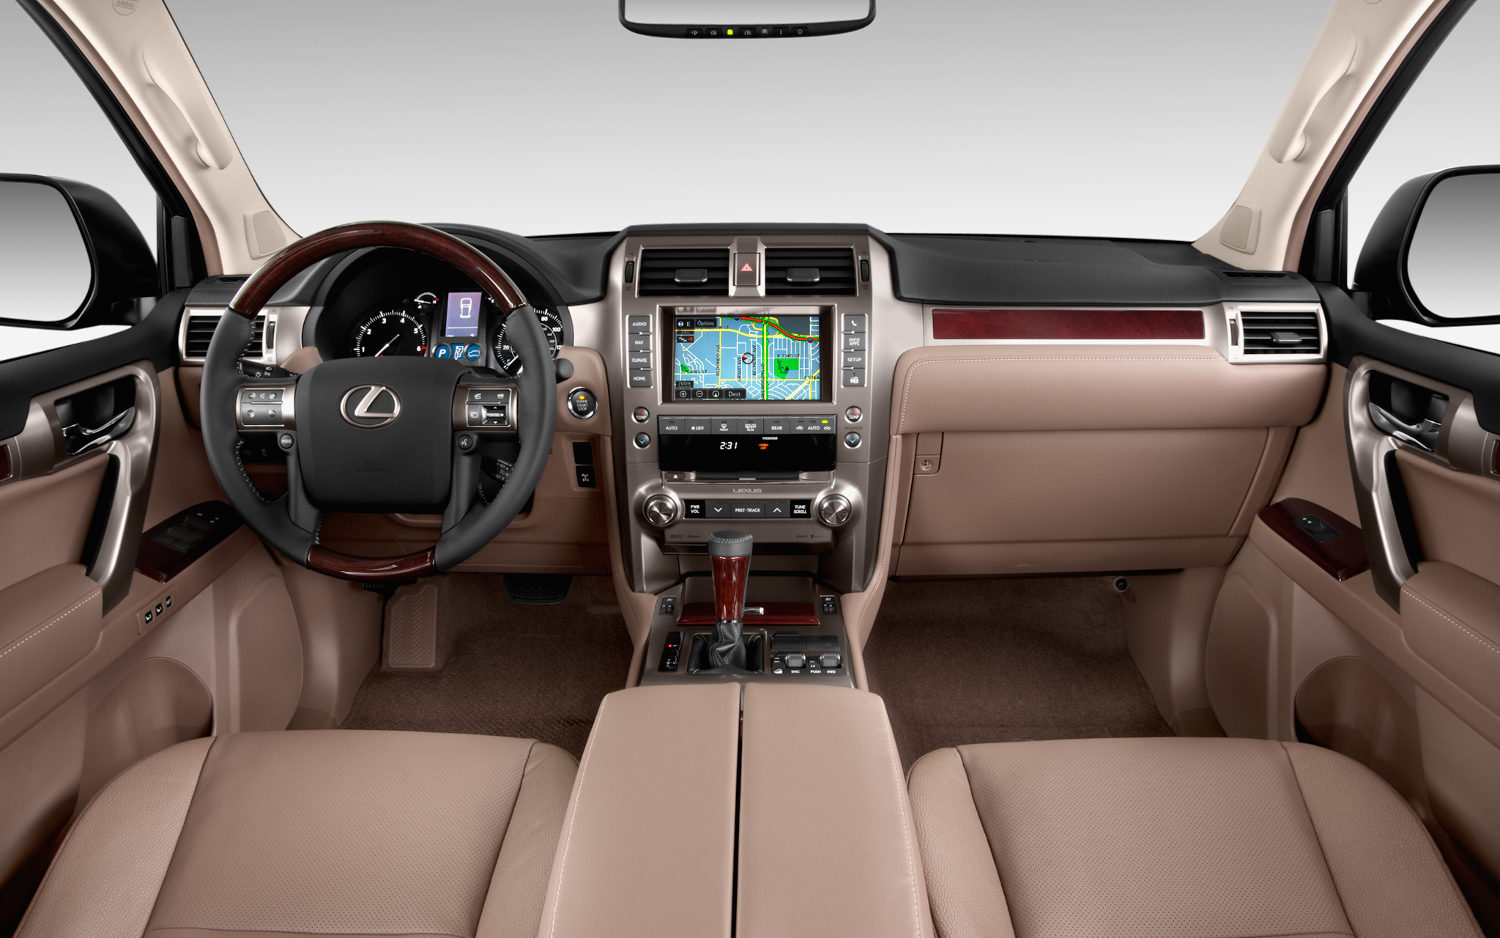 Comparison Lexus Gx 460 Luxury 2015 Vs Toyota Land Cruiser Prado 2015 Suv Drive